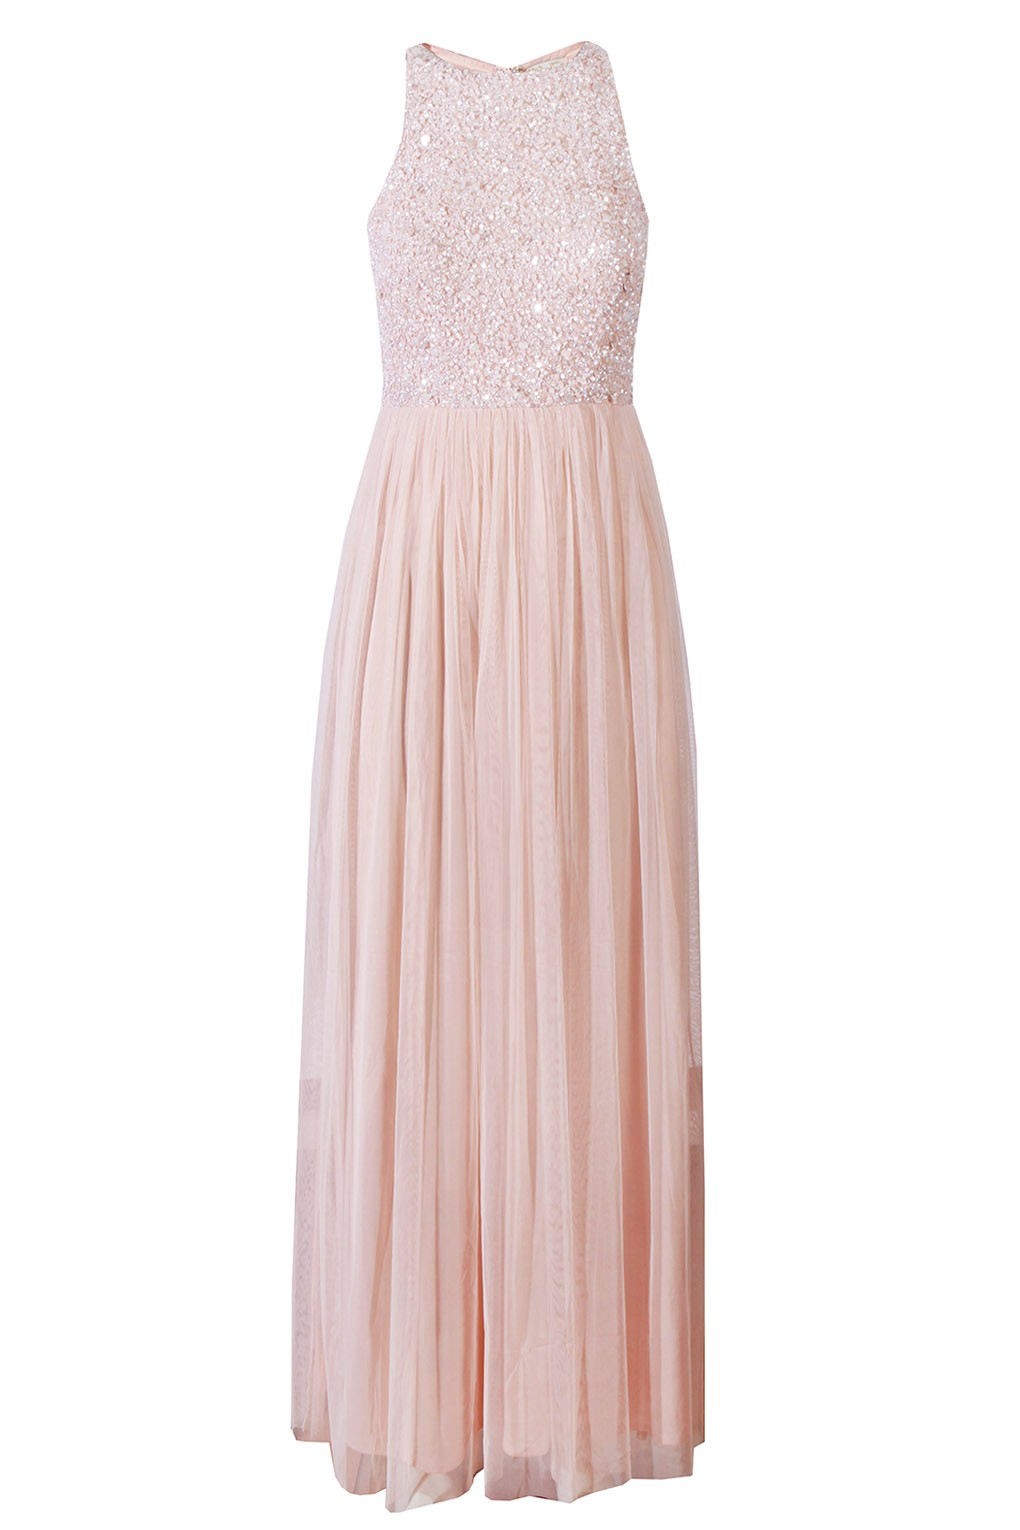 Lace Amp Beads Picasso Pink Embellished Maxi Dress Party